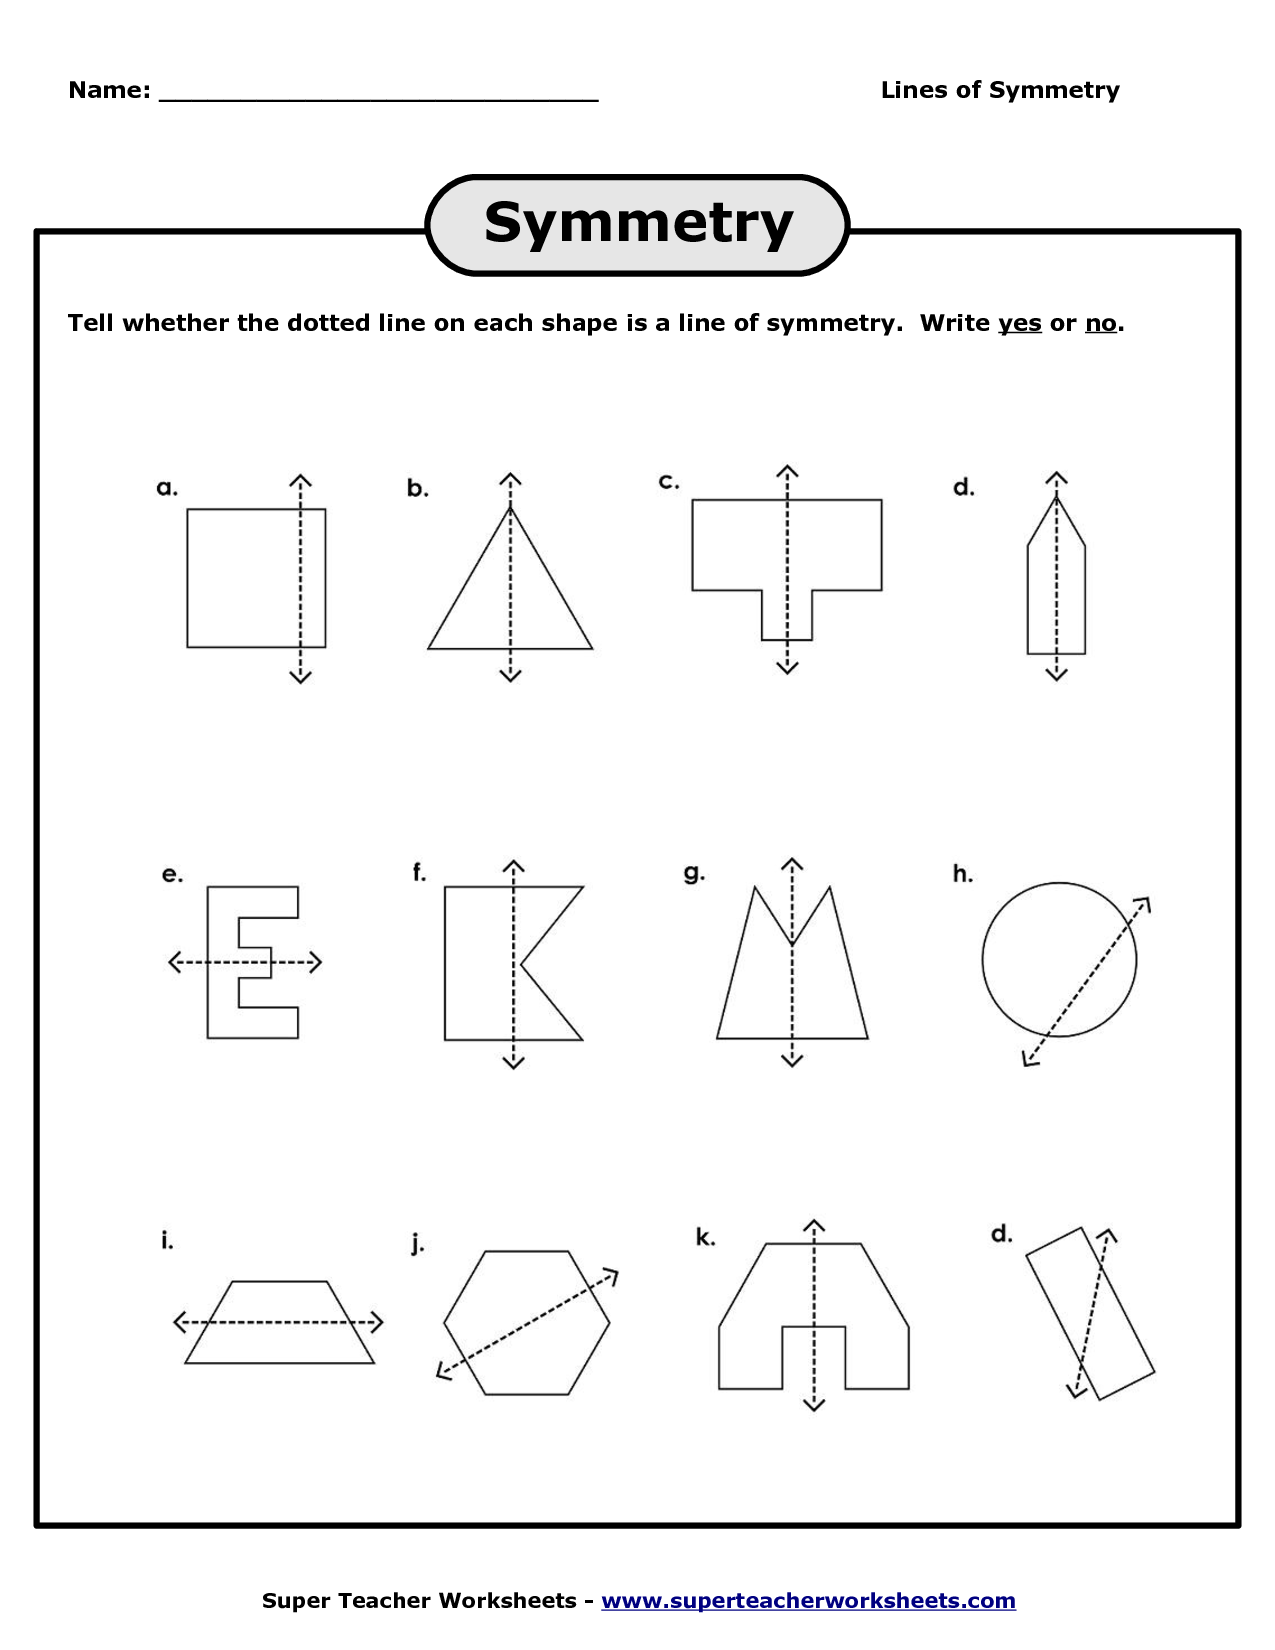 lines of symmetry worksheets – Symmetry Worksheets Kindergarten